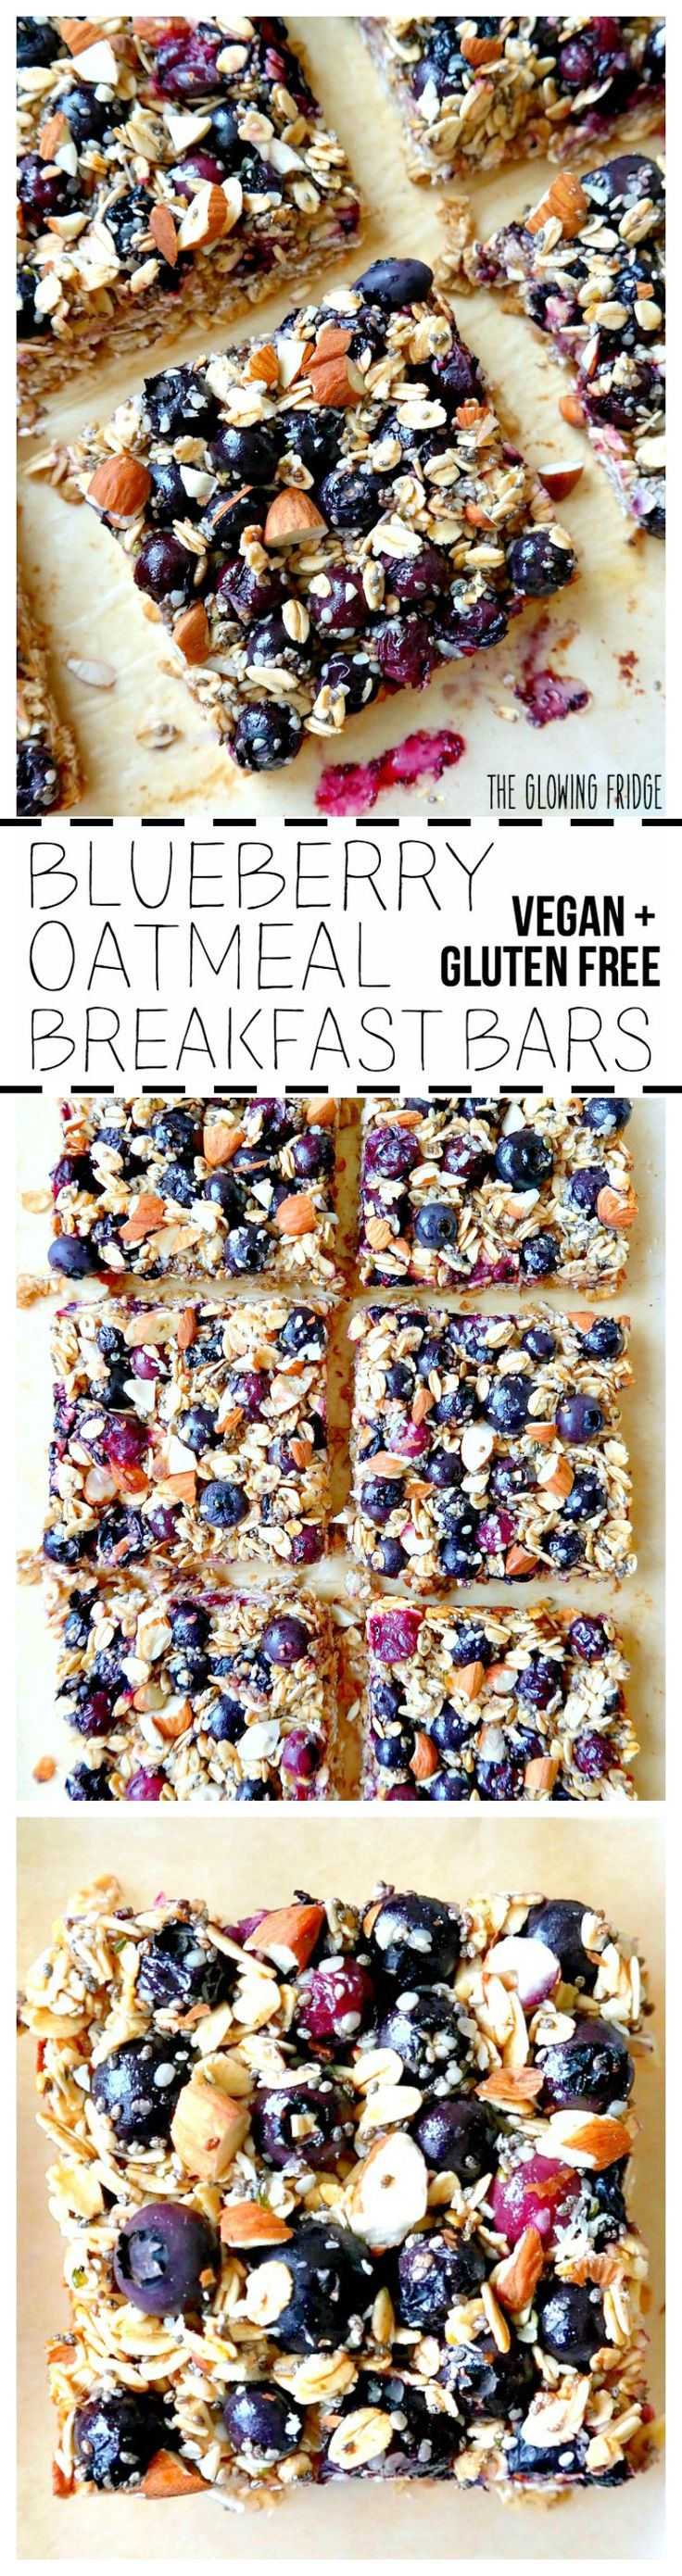 VEGAN & GF. 'Blueberry Oatmeal Breakfast Bars' that are wholesome, super clean, nutritionally balanced, naturally sweetened and have the added superfood goodness of chia seeds and hemp seeds! Eat one square alongside a smoothie for breakfast or as a yummy post-workout snack. From The Glowing Fridge. #vegan #breakfast #bar